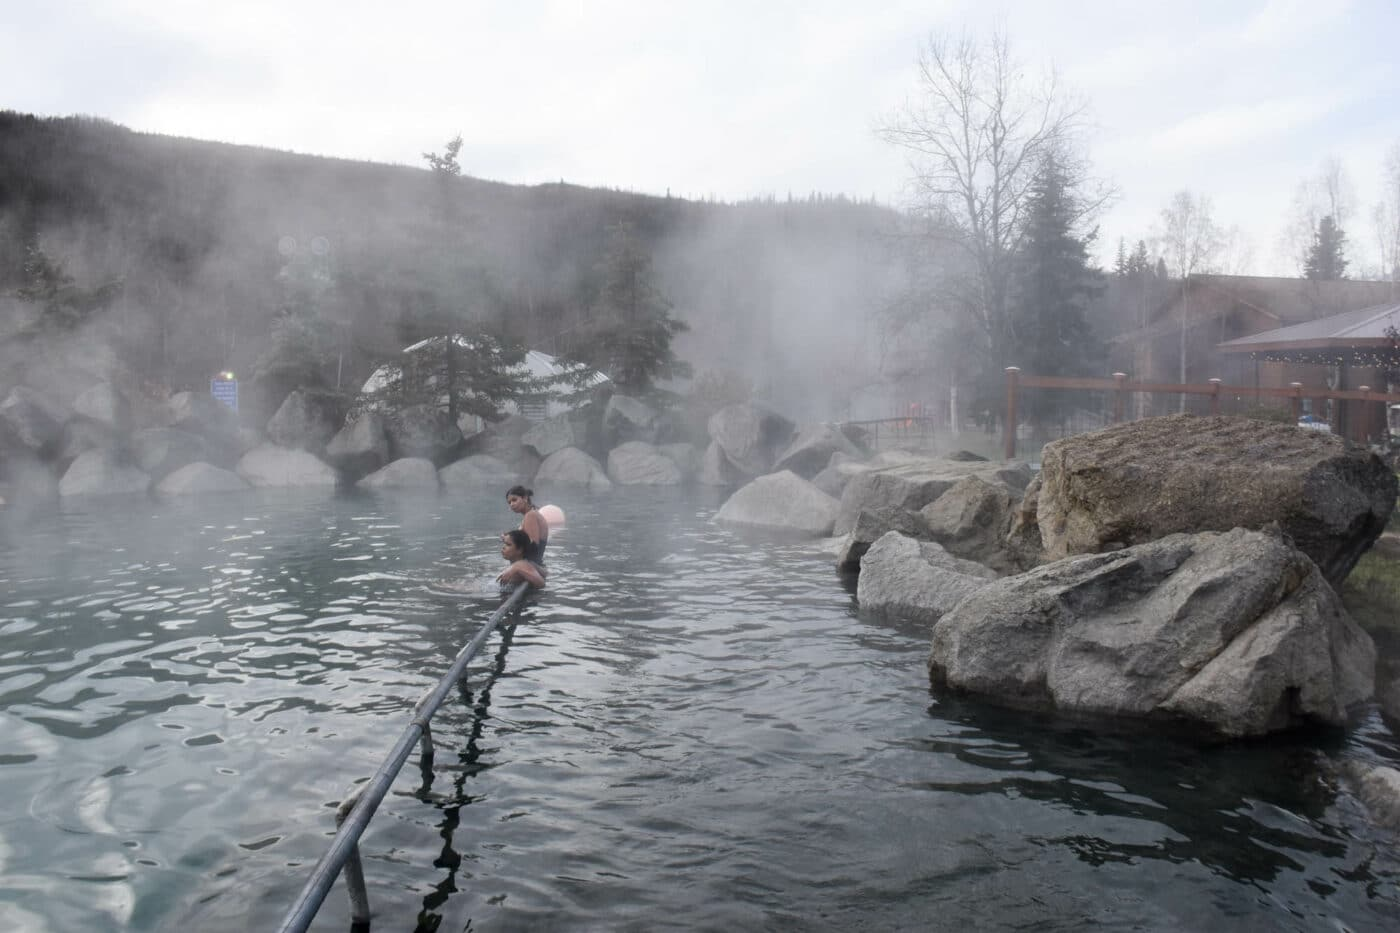 Chena Hot Springs Resort – The best way to end your Alaska Adventure